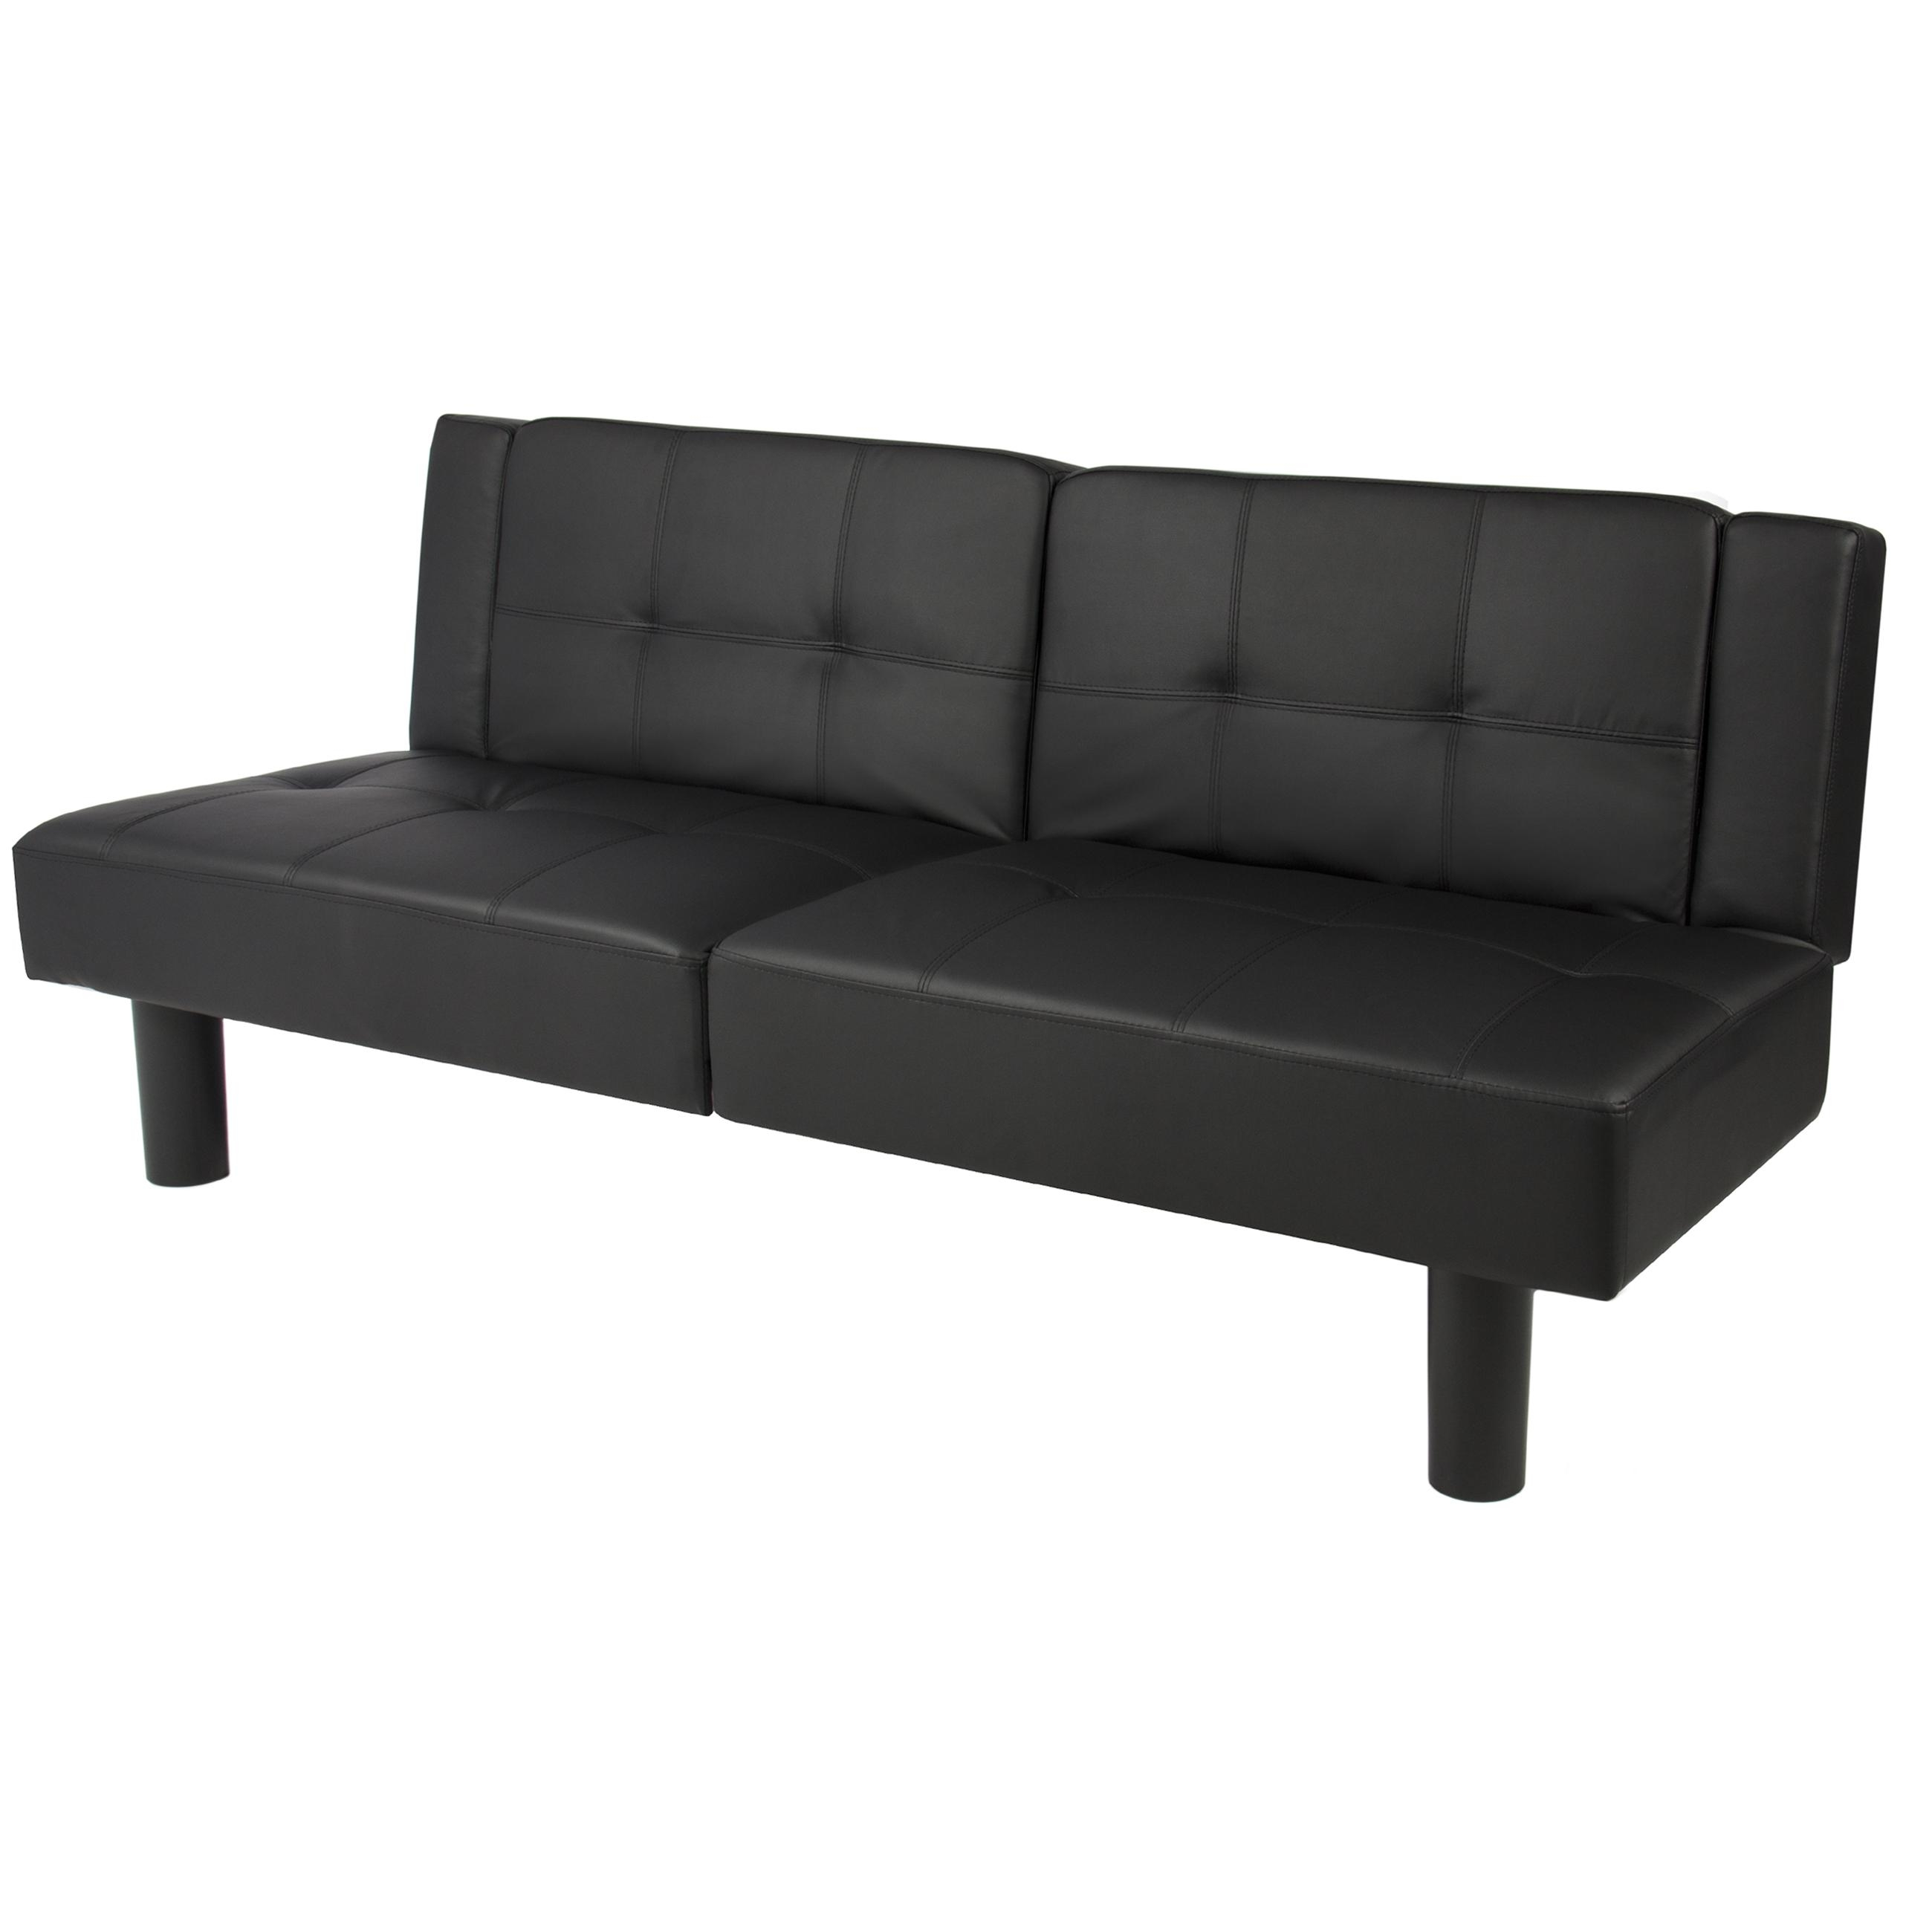 Leather Faux Fold Down Futon Sofa Bed Couch Sleeper Furniture Regarding Convertible Futon Sofa Beds (View 9 of 20)